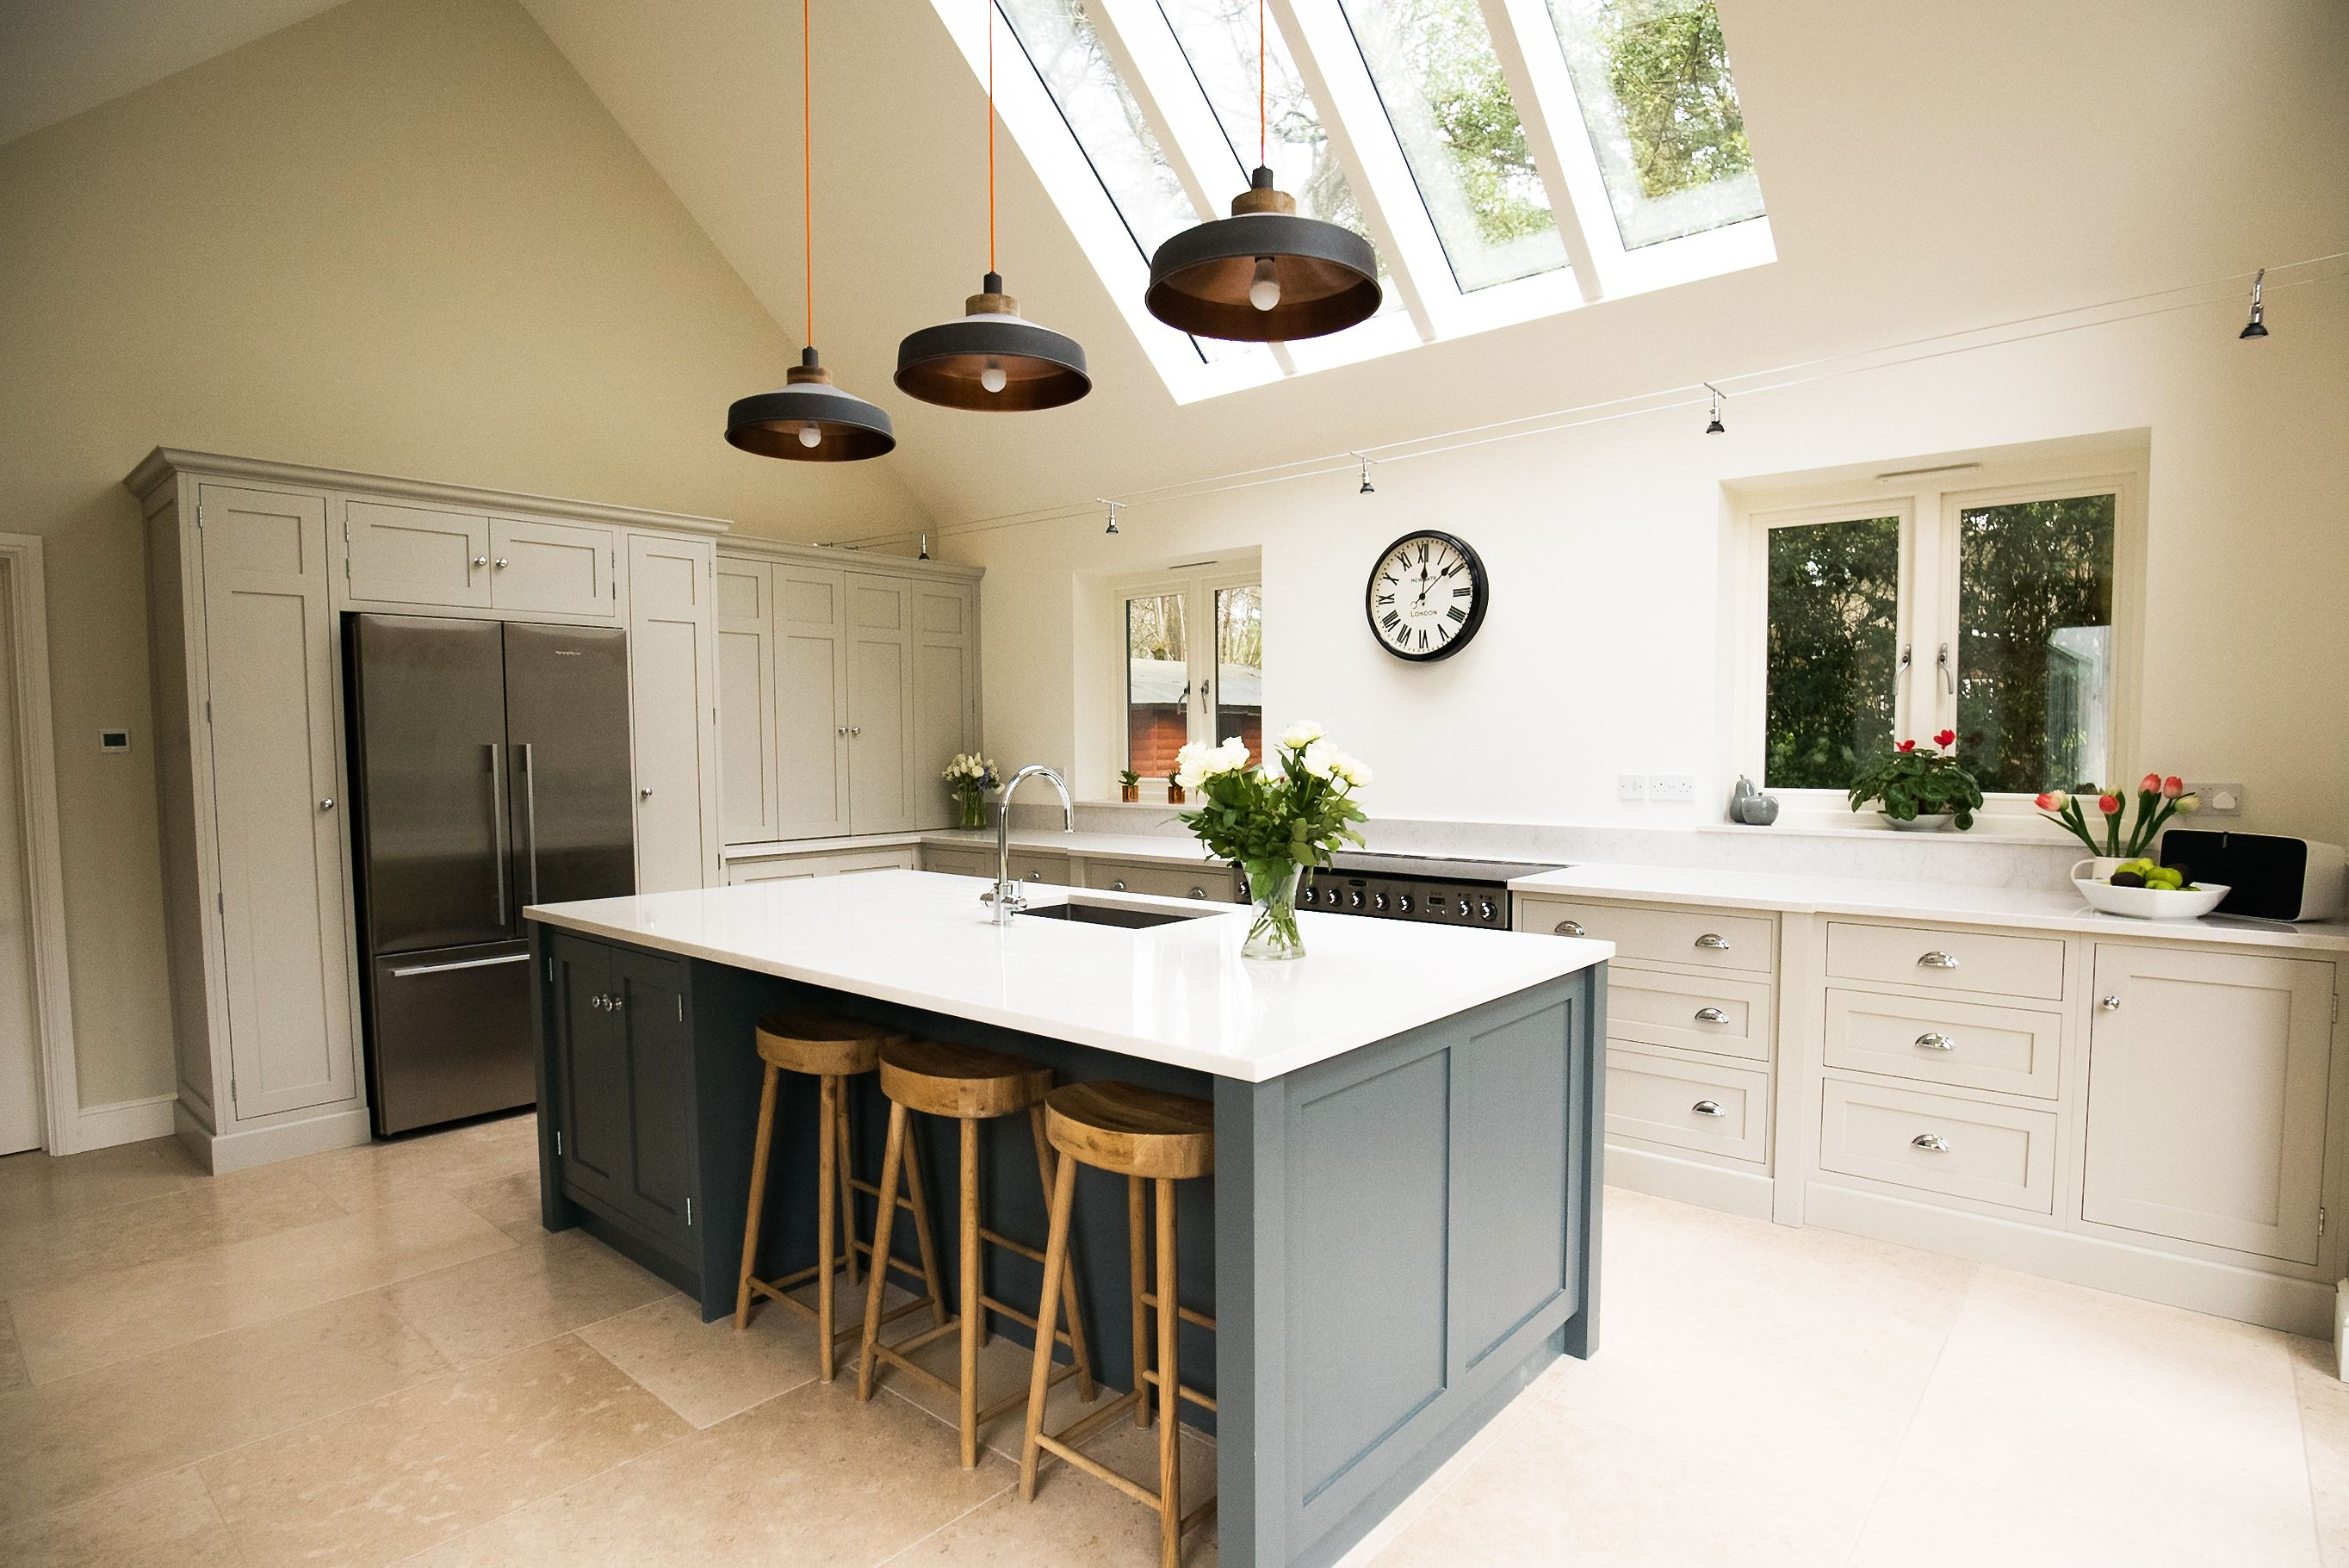 Beautiful shaker kitchen with a large island from The White